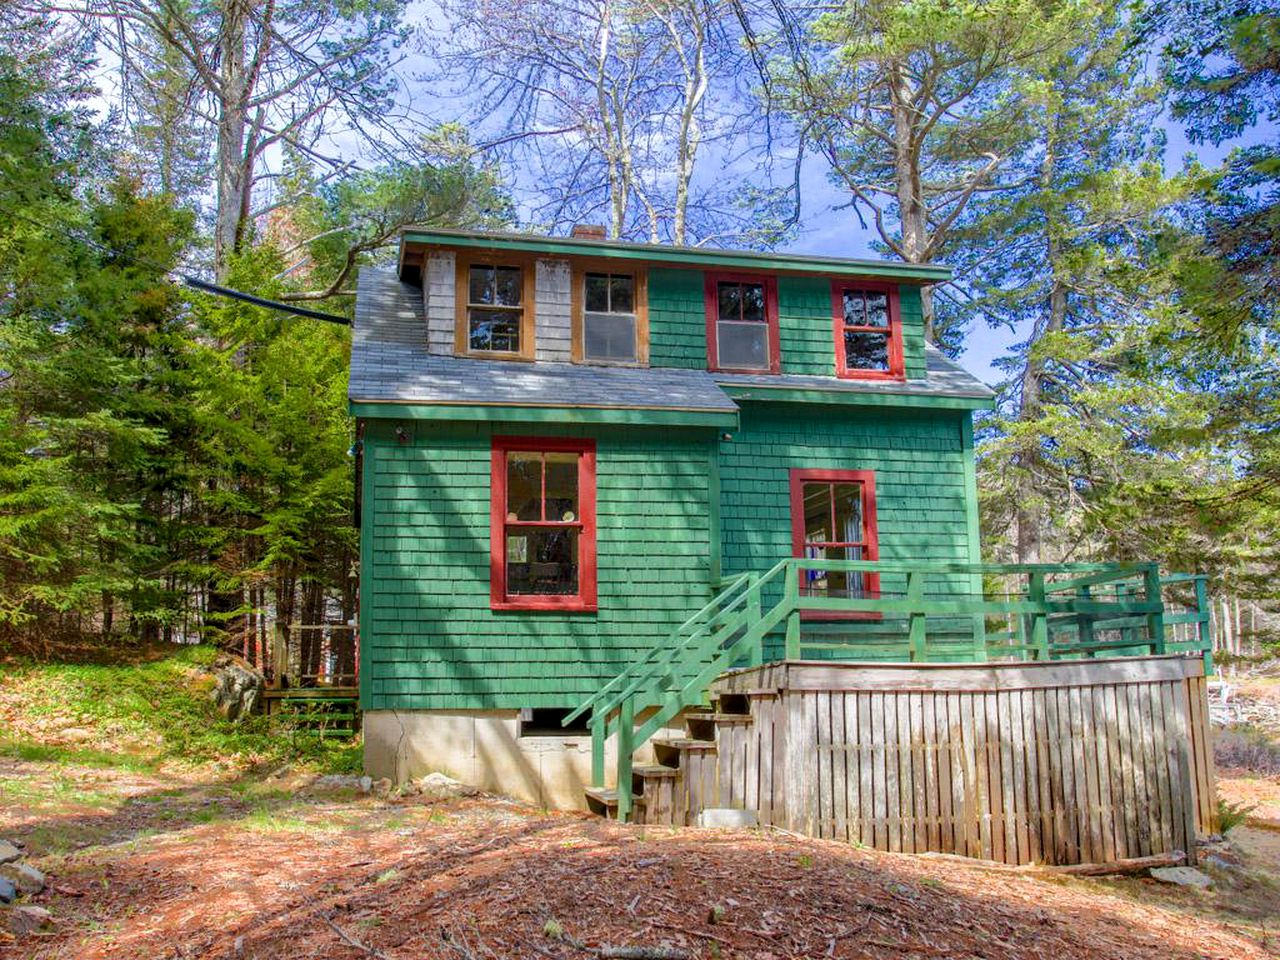 Cabins (Boothbay Harbor, Maine, United States)